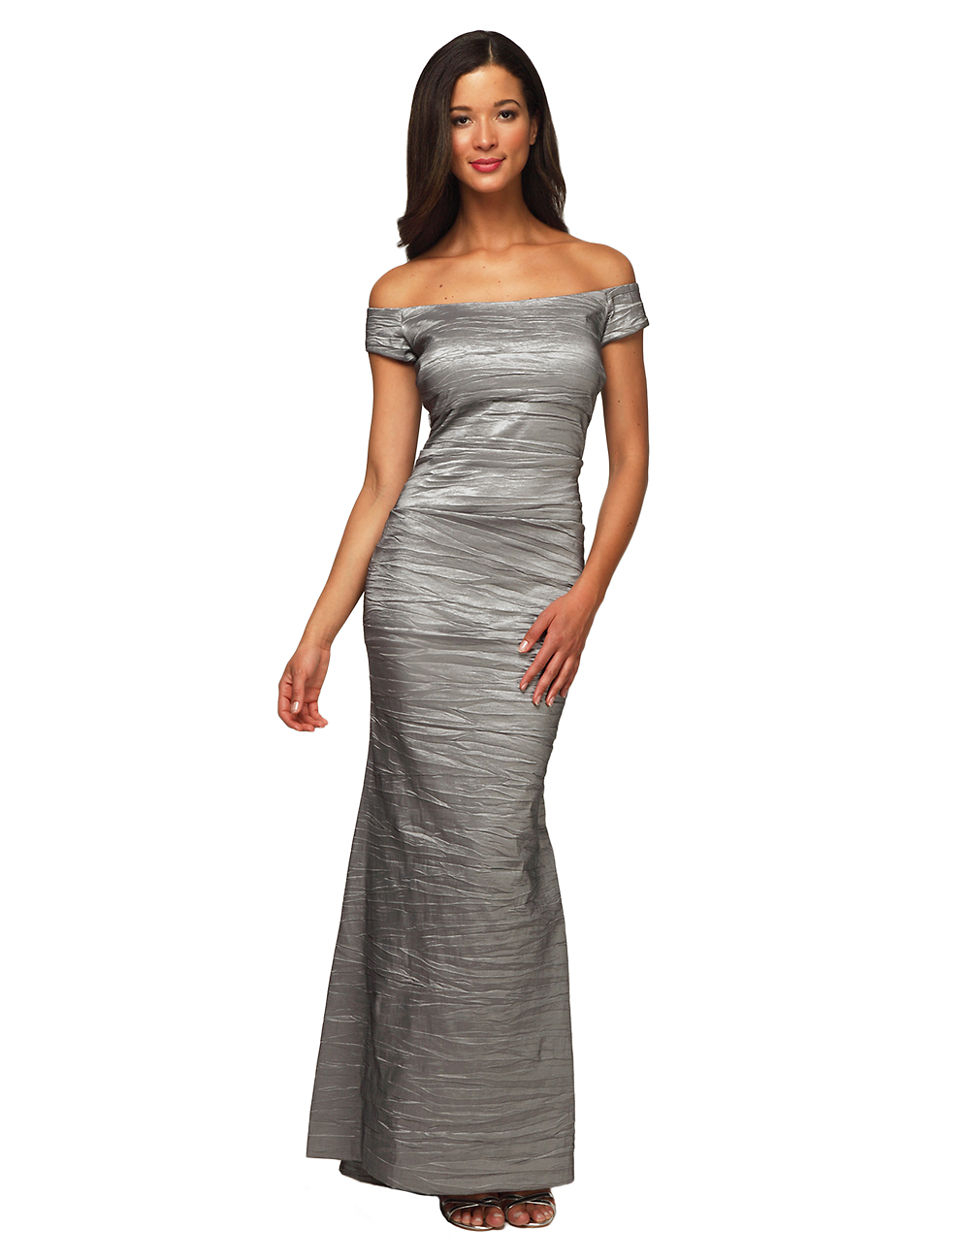 18c4ecf7edaf8 Alex Evening Dresses At Lord And Taylor - Dress Foto and Picture